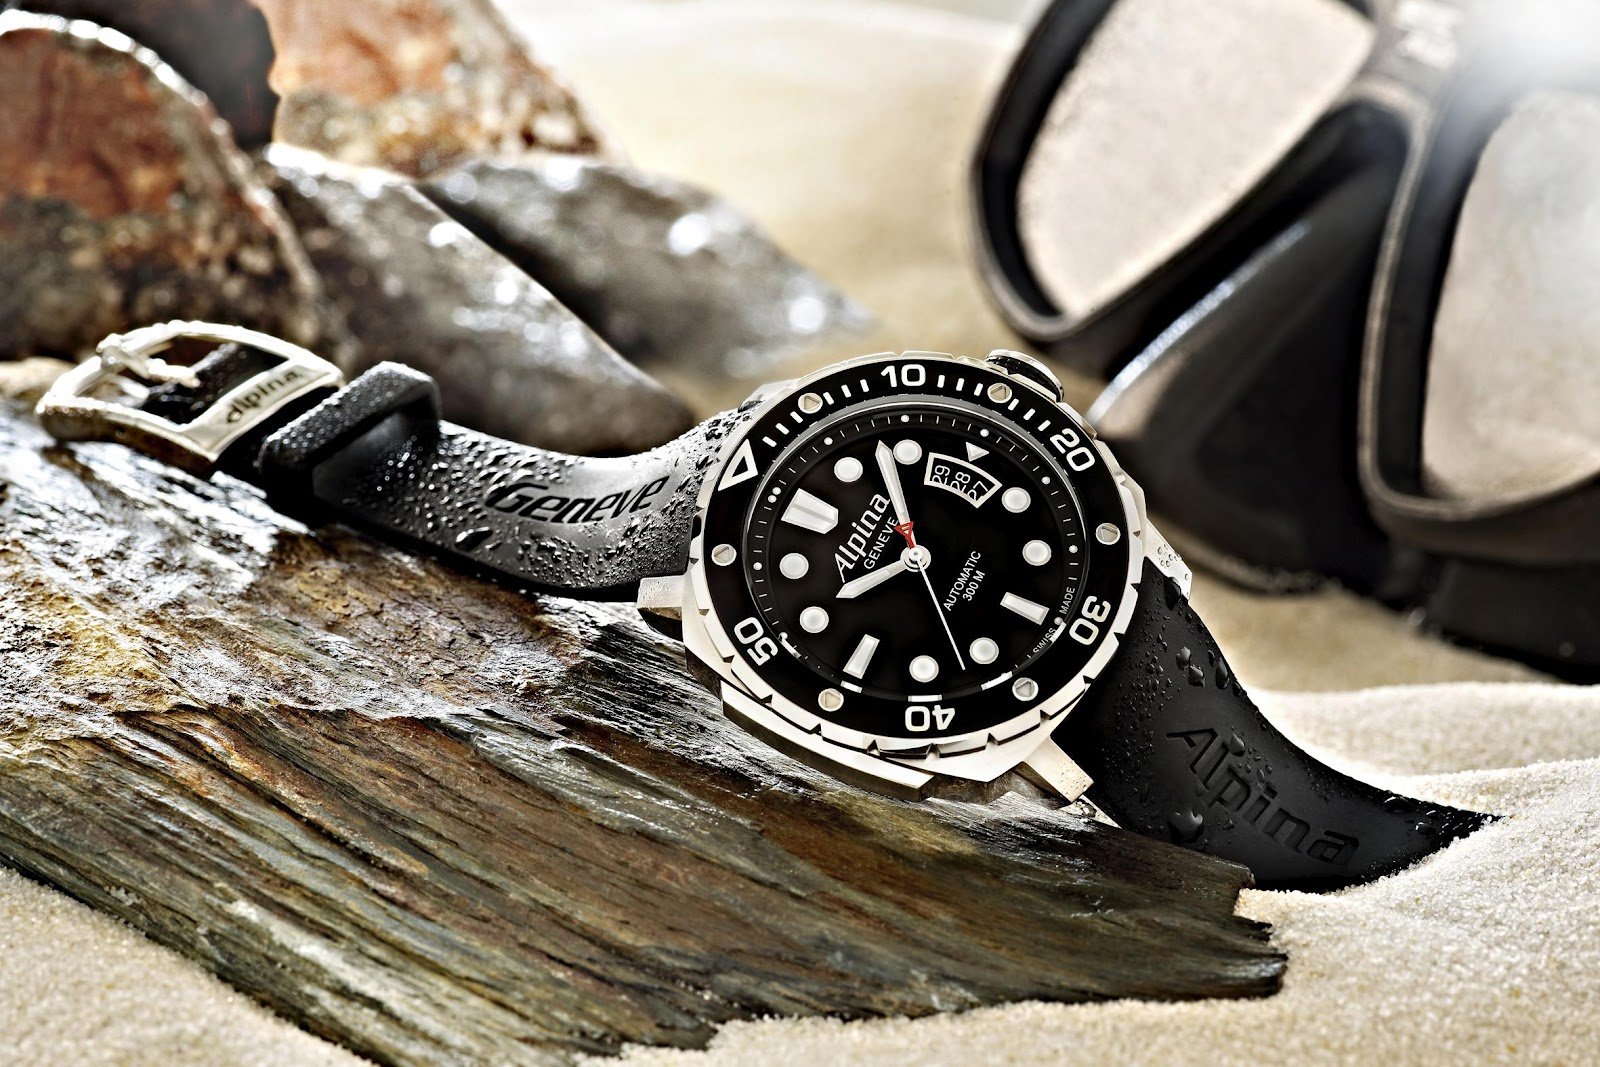 How to sell your watch?